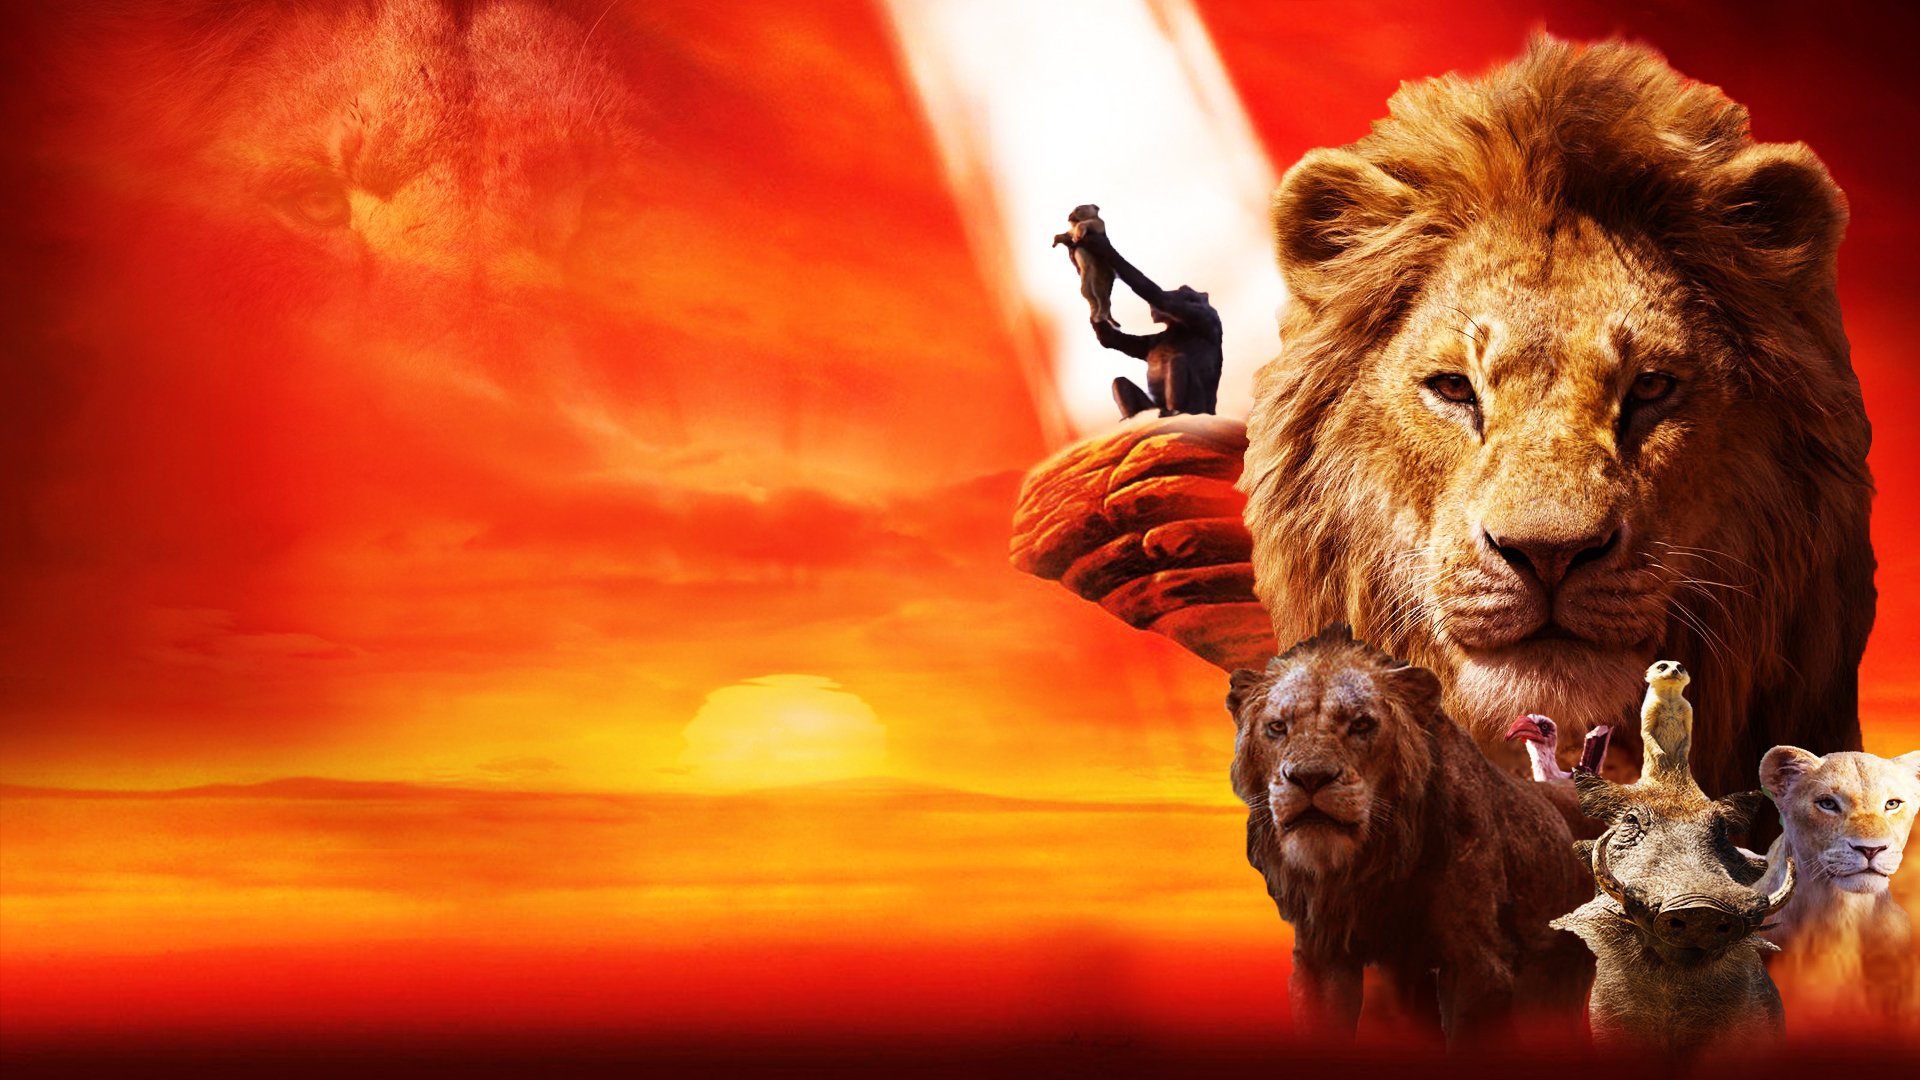 The Lion King 2019 Wallpaper By The Dark Mamba 995 On